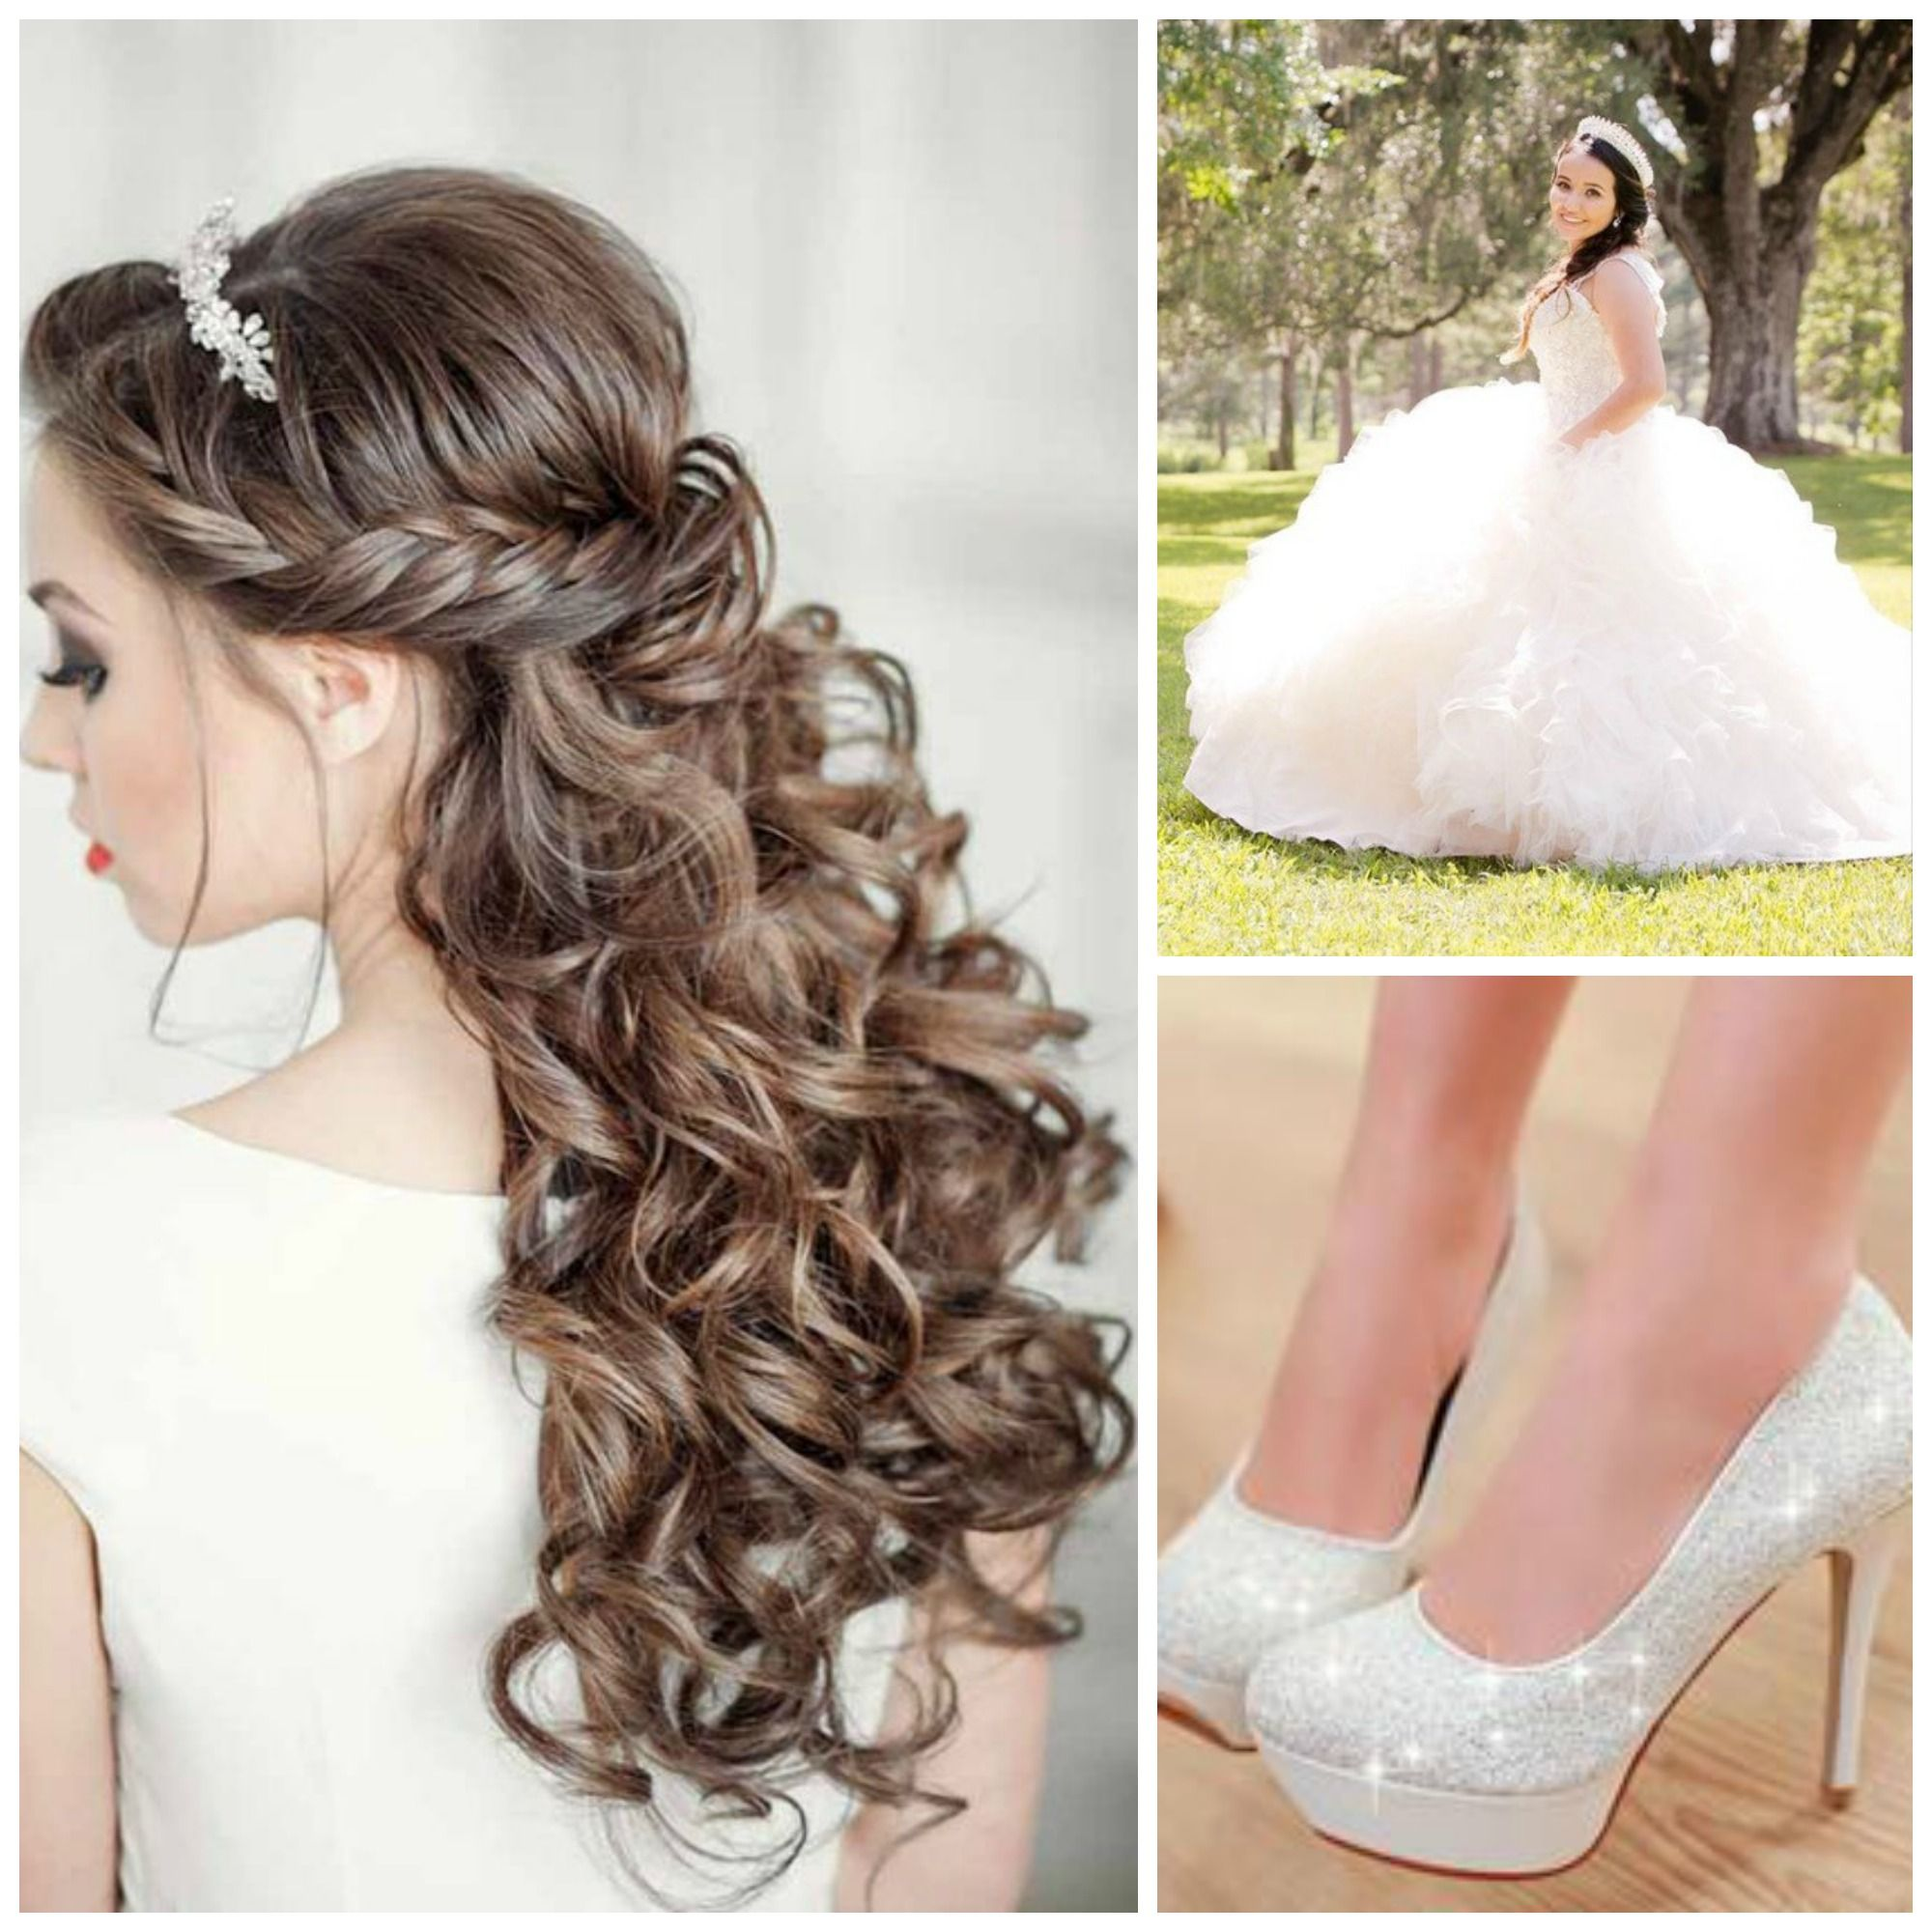 planning your | quinceanera ideas | pinterest | quinceanera ideas